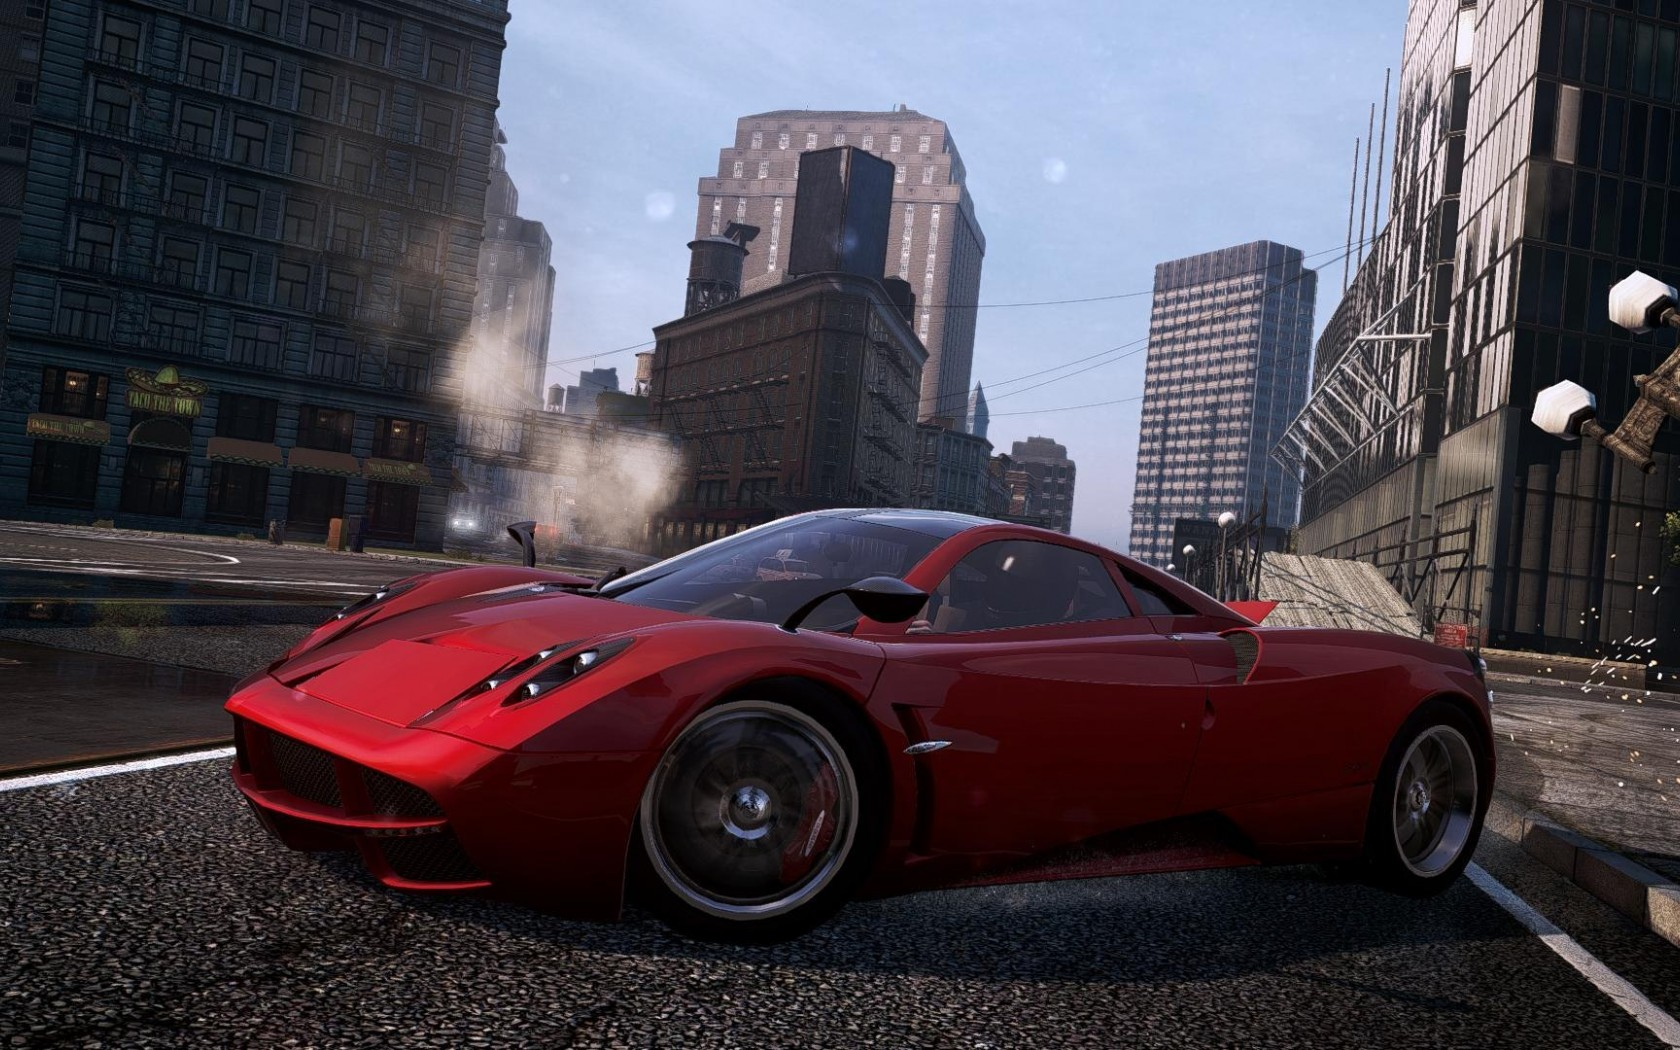 Pagani Need For Speed Most Wanted 1430401 Hd Wallpaper